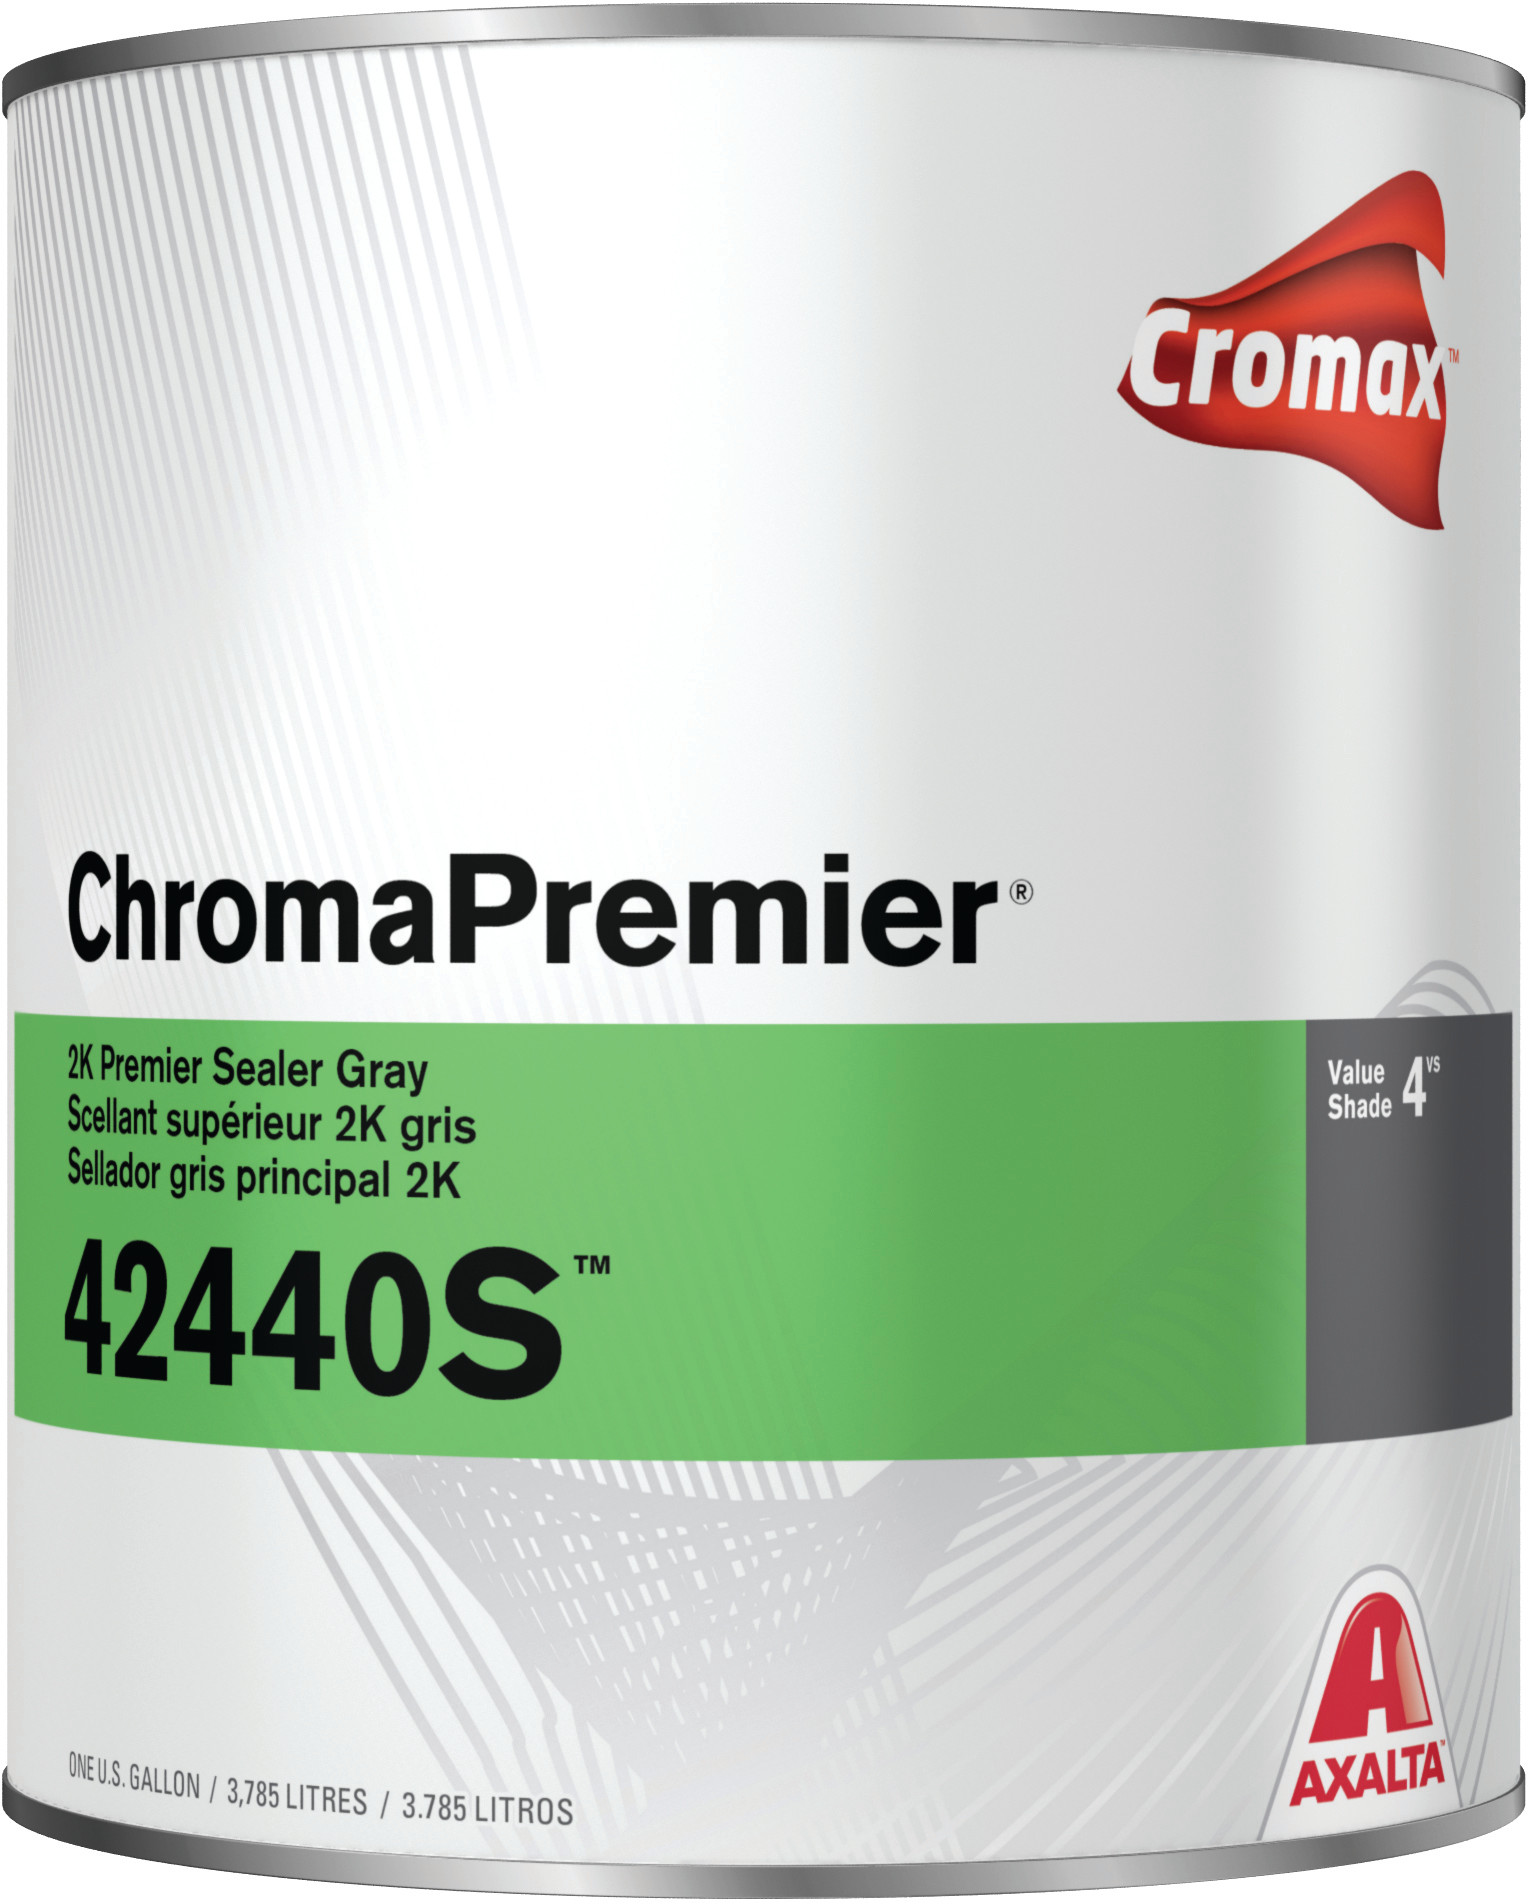 Dupont Chromapremier 42440s 2k Premier Sealer Gallon